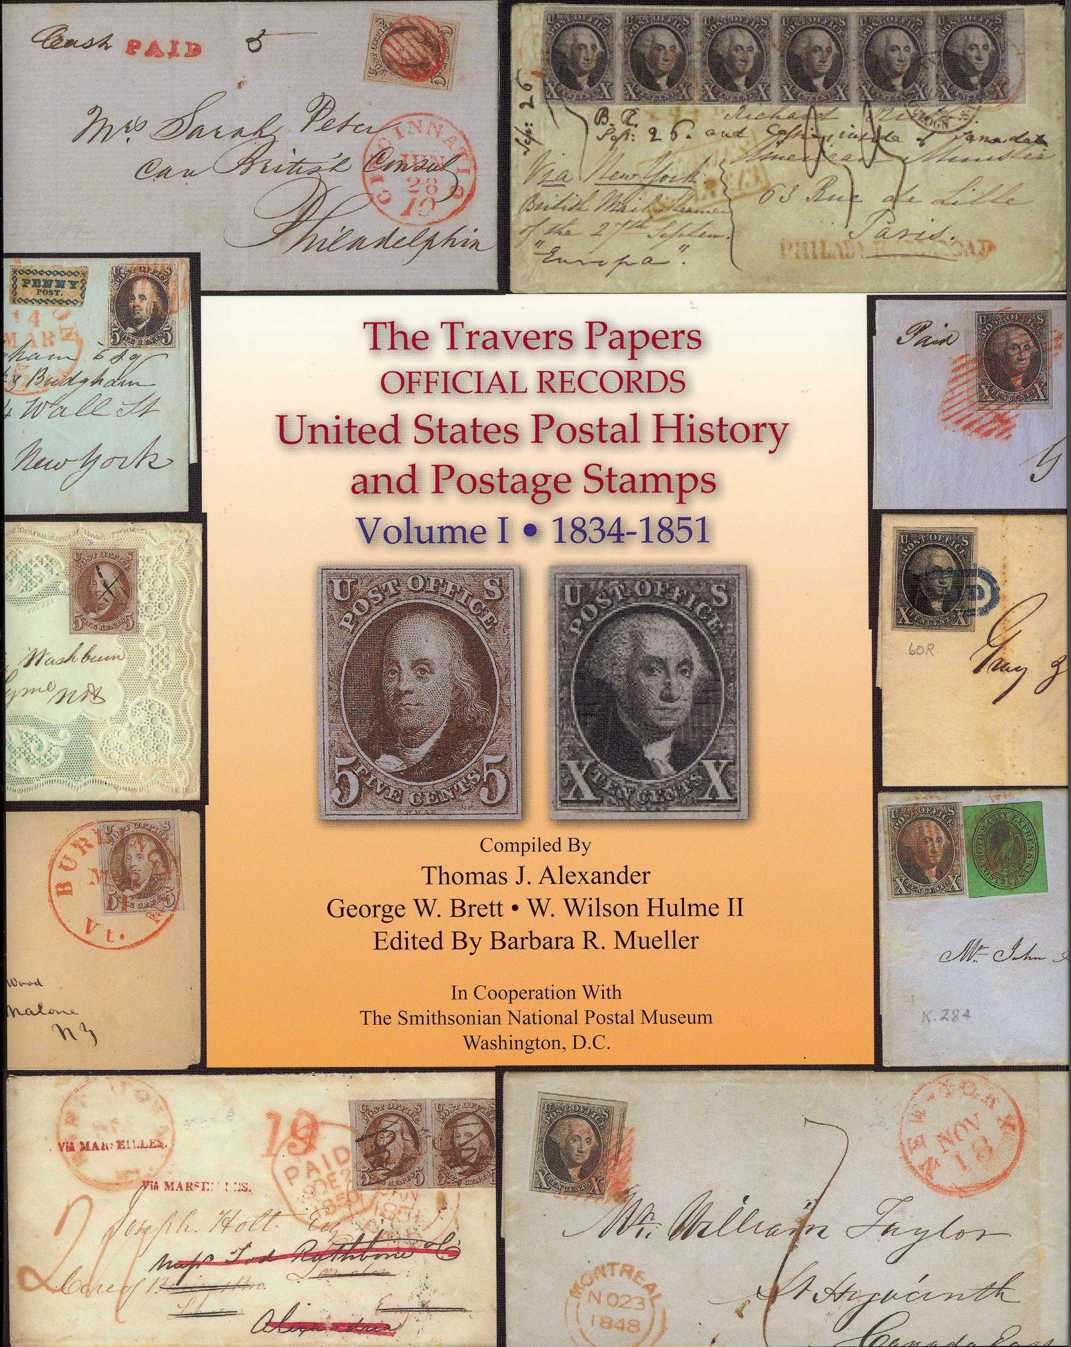 collecting stamps essay u s postage stamps essays amp proofs the travers papers